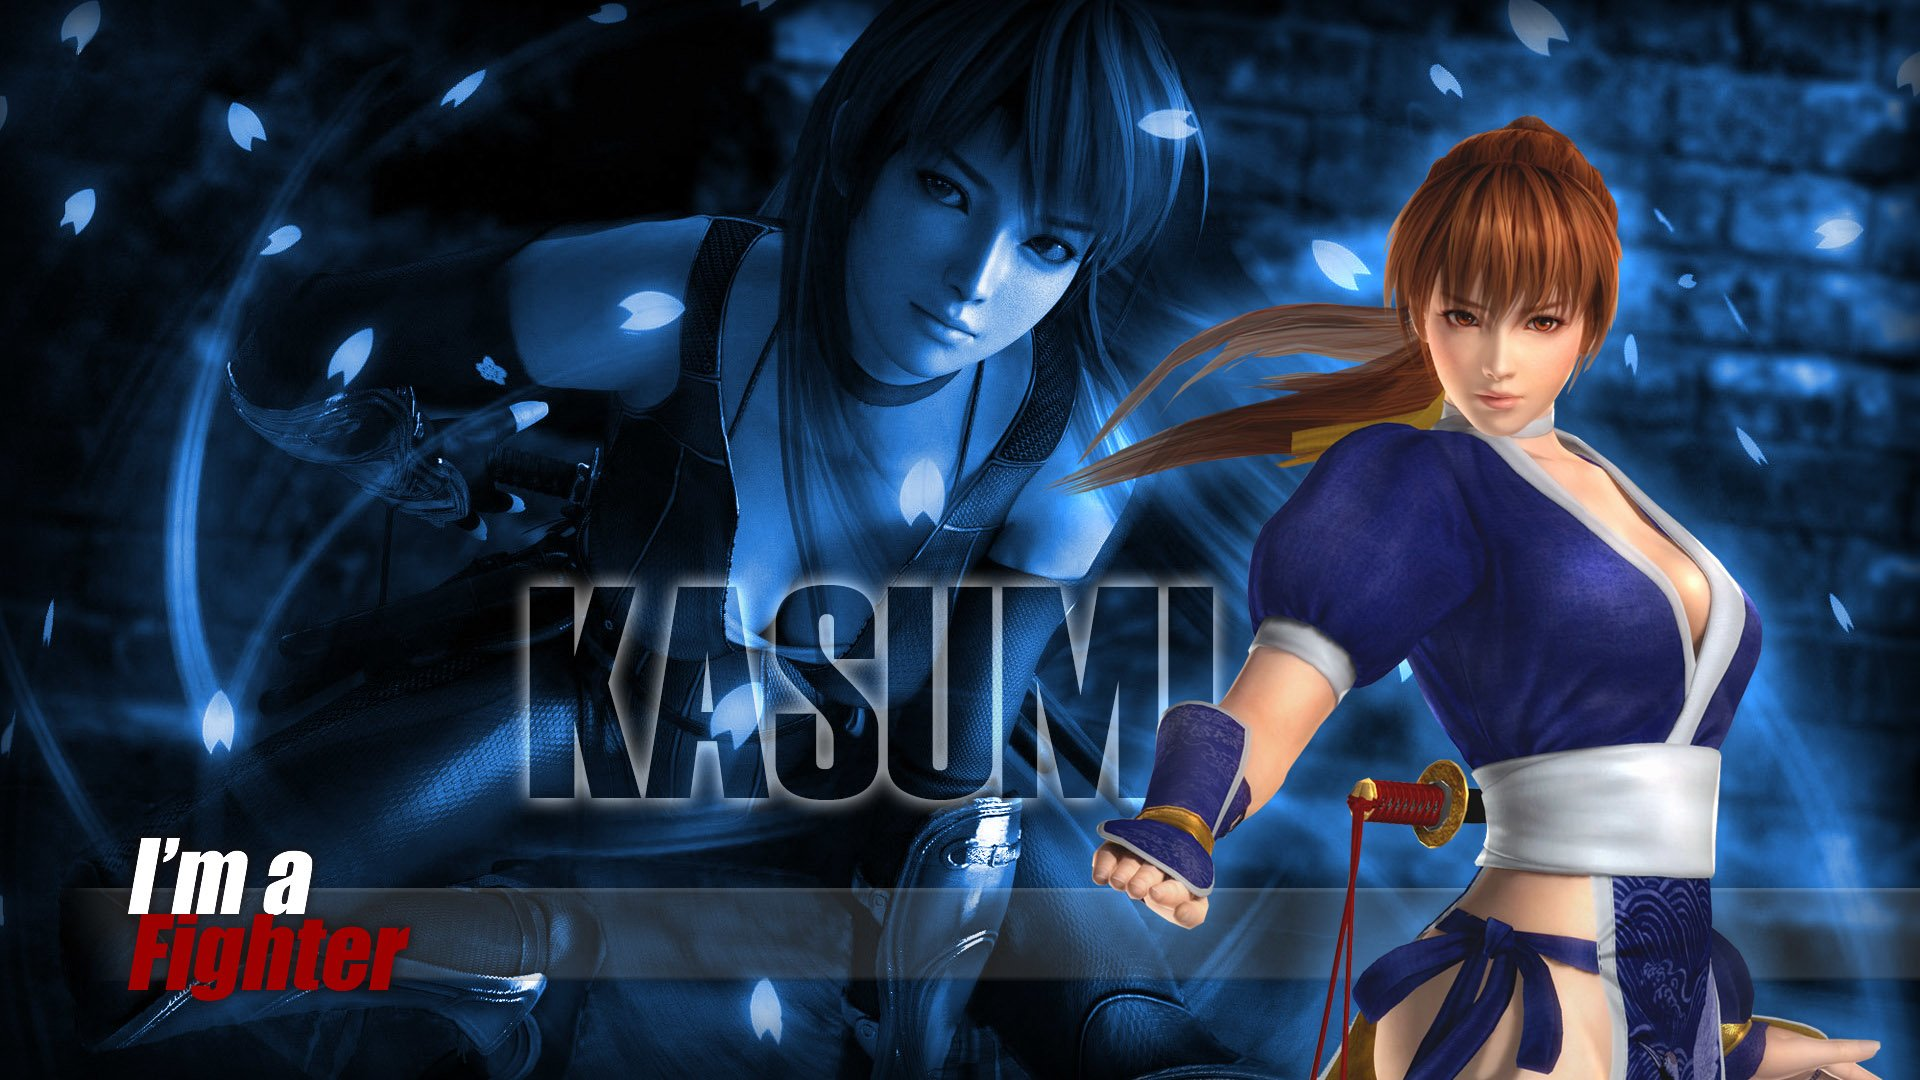 1 Dead Or Alive 5 Hd Wallpapers Background Images Wallpaper Abyss